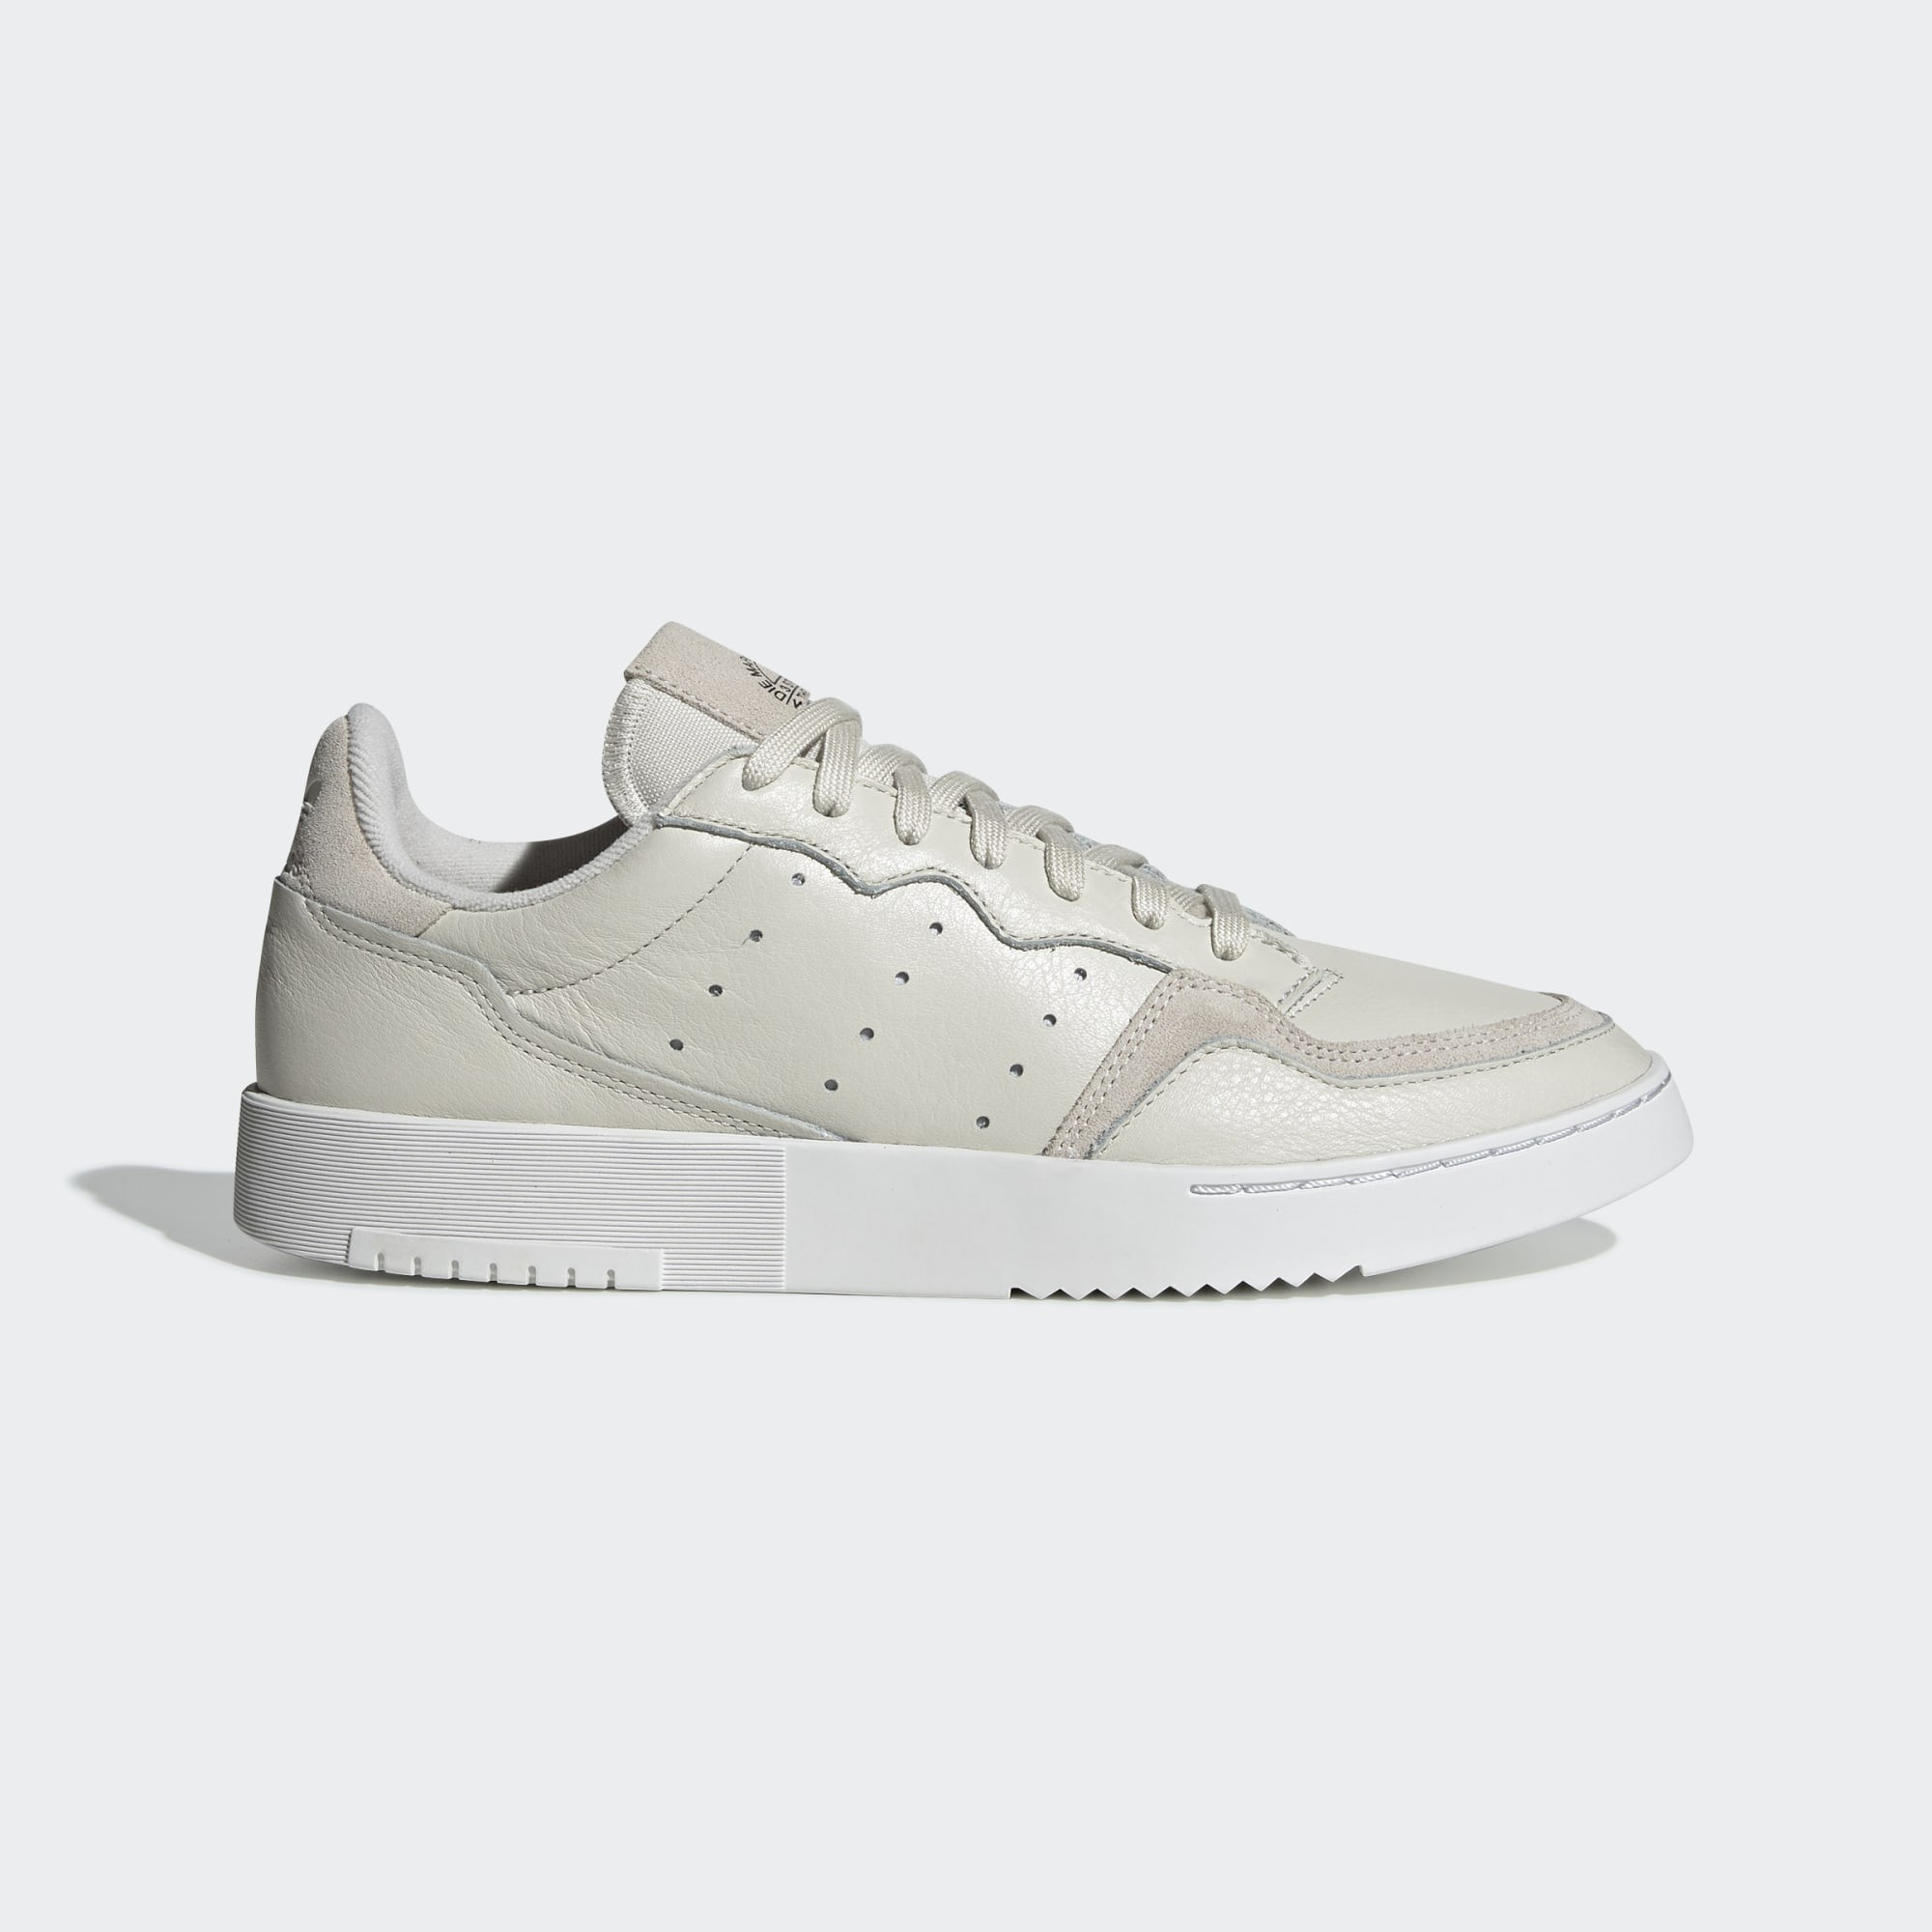 adidas Supercourt Shoes White EE6031